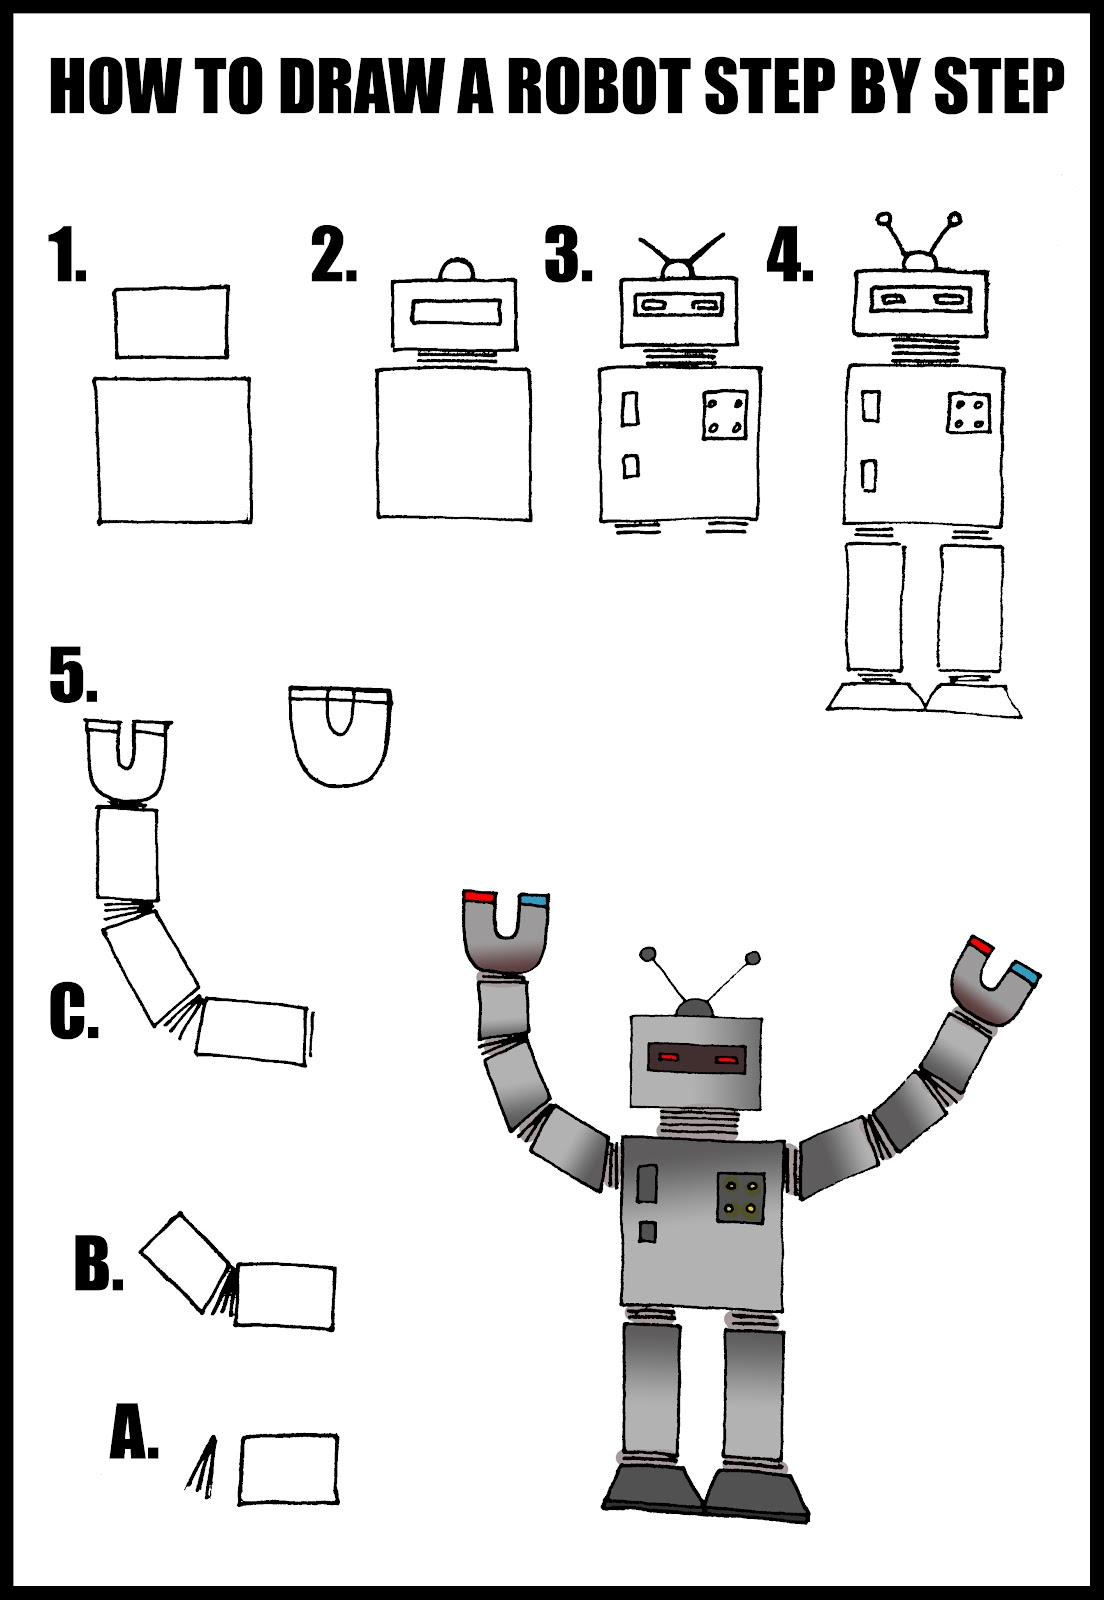 Daryl hobson artwork how to draw a robot step by step